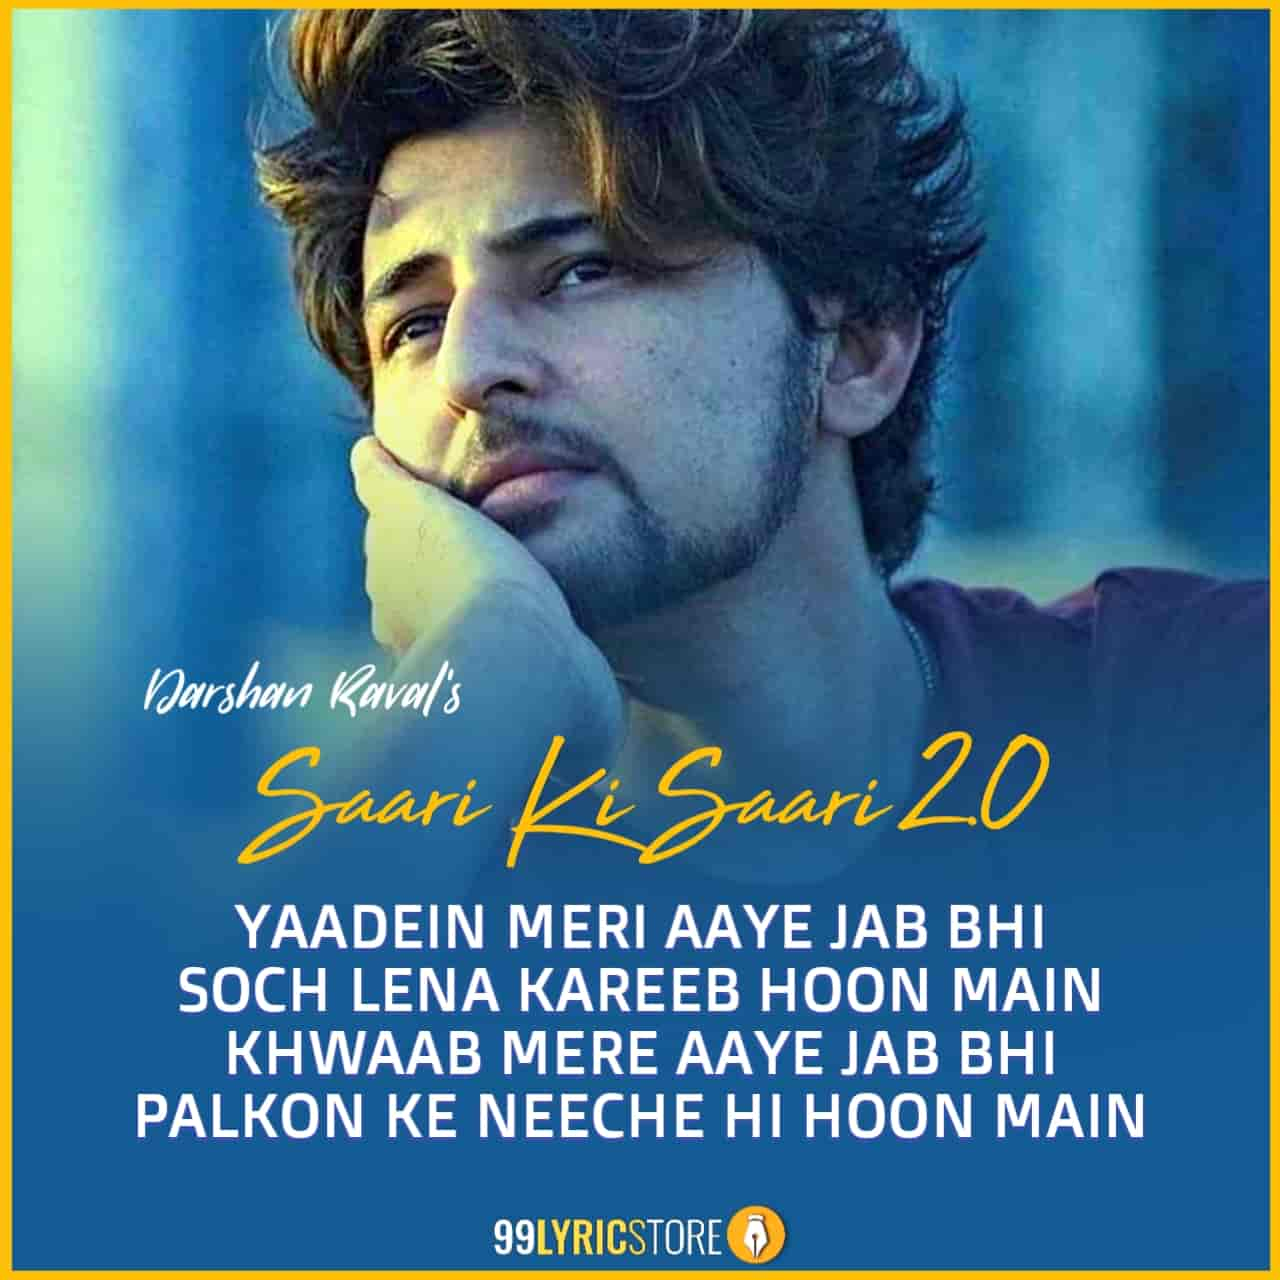 SAARI KI SAARI 2.0 LYRICS Photo sung by Darshan Raval and Asees Kaur written by also Darshan Raval and music by Lijo George.